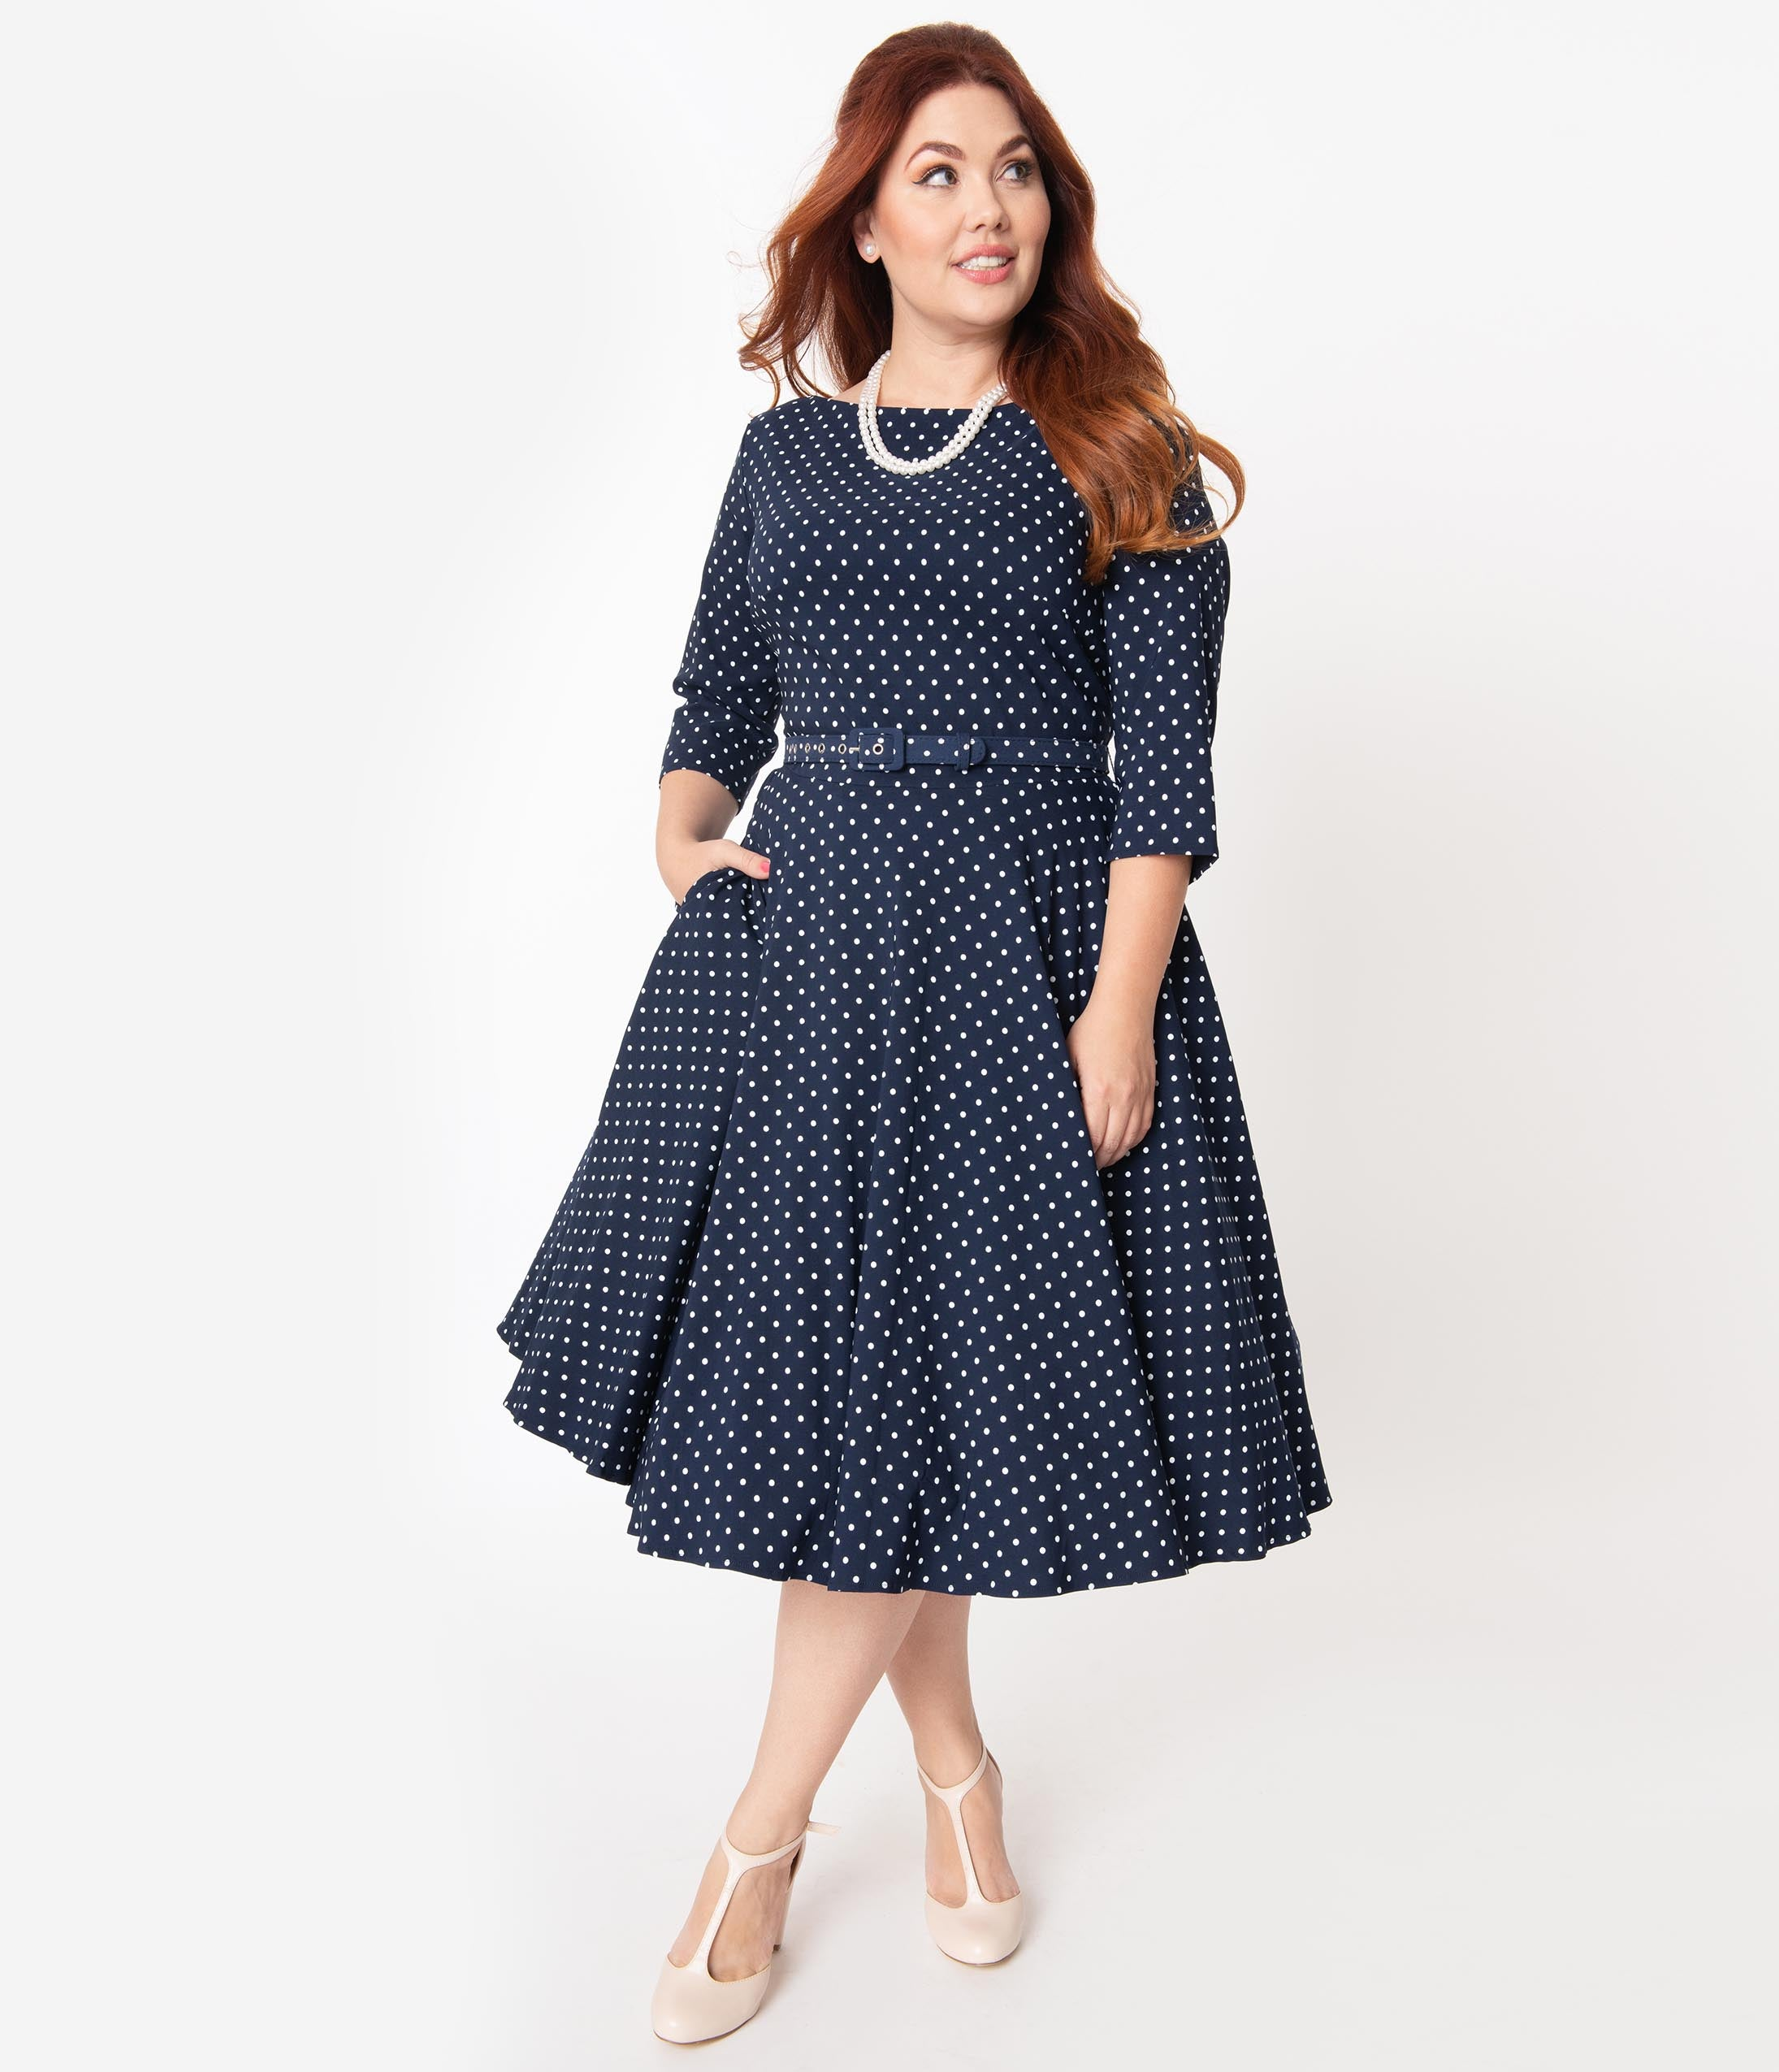 1950s Plus Size Dresses, Swing Dresses Unique Vintage Plus Size 1950S Navy  White Pin Dot Devon Swing Dress $88.00 AT vintagedancer.com